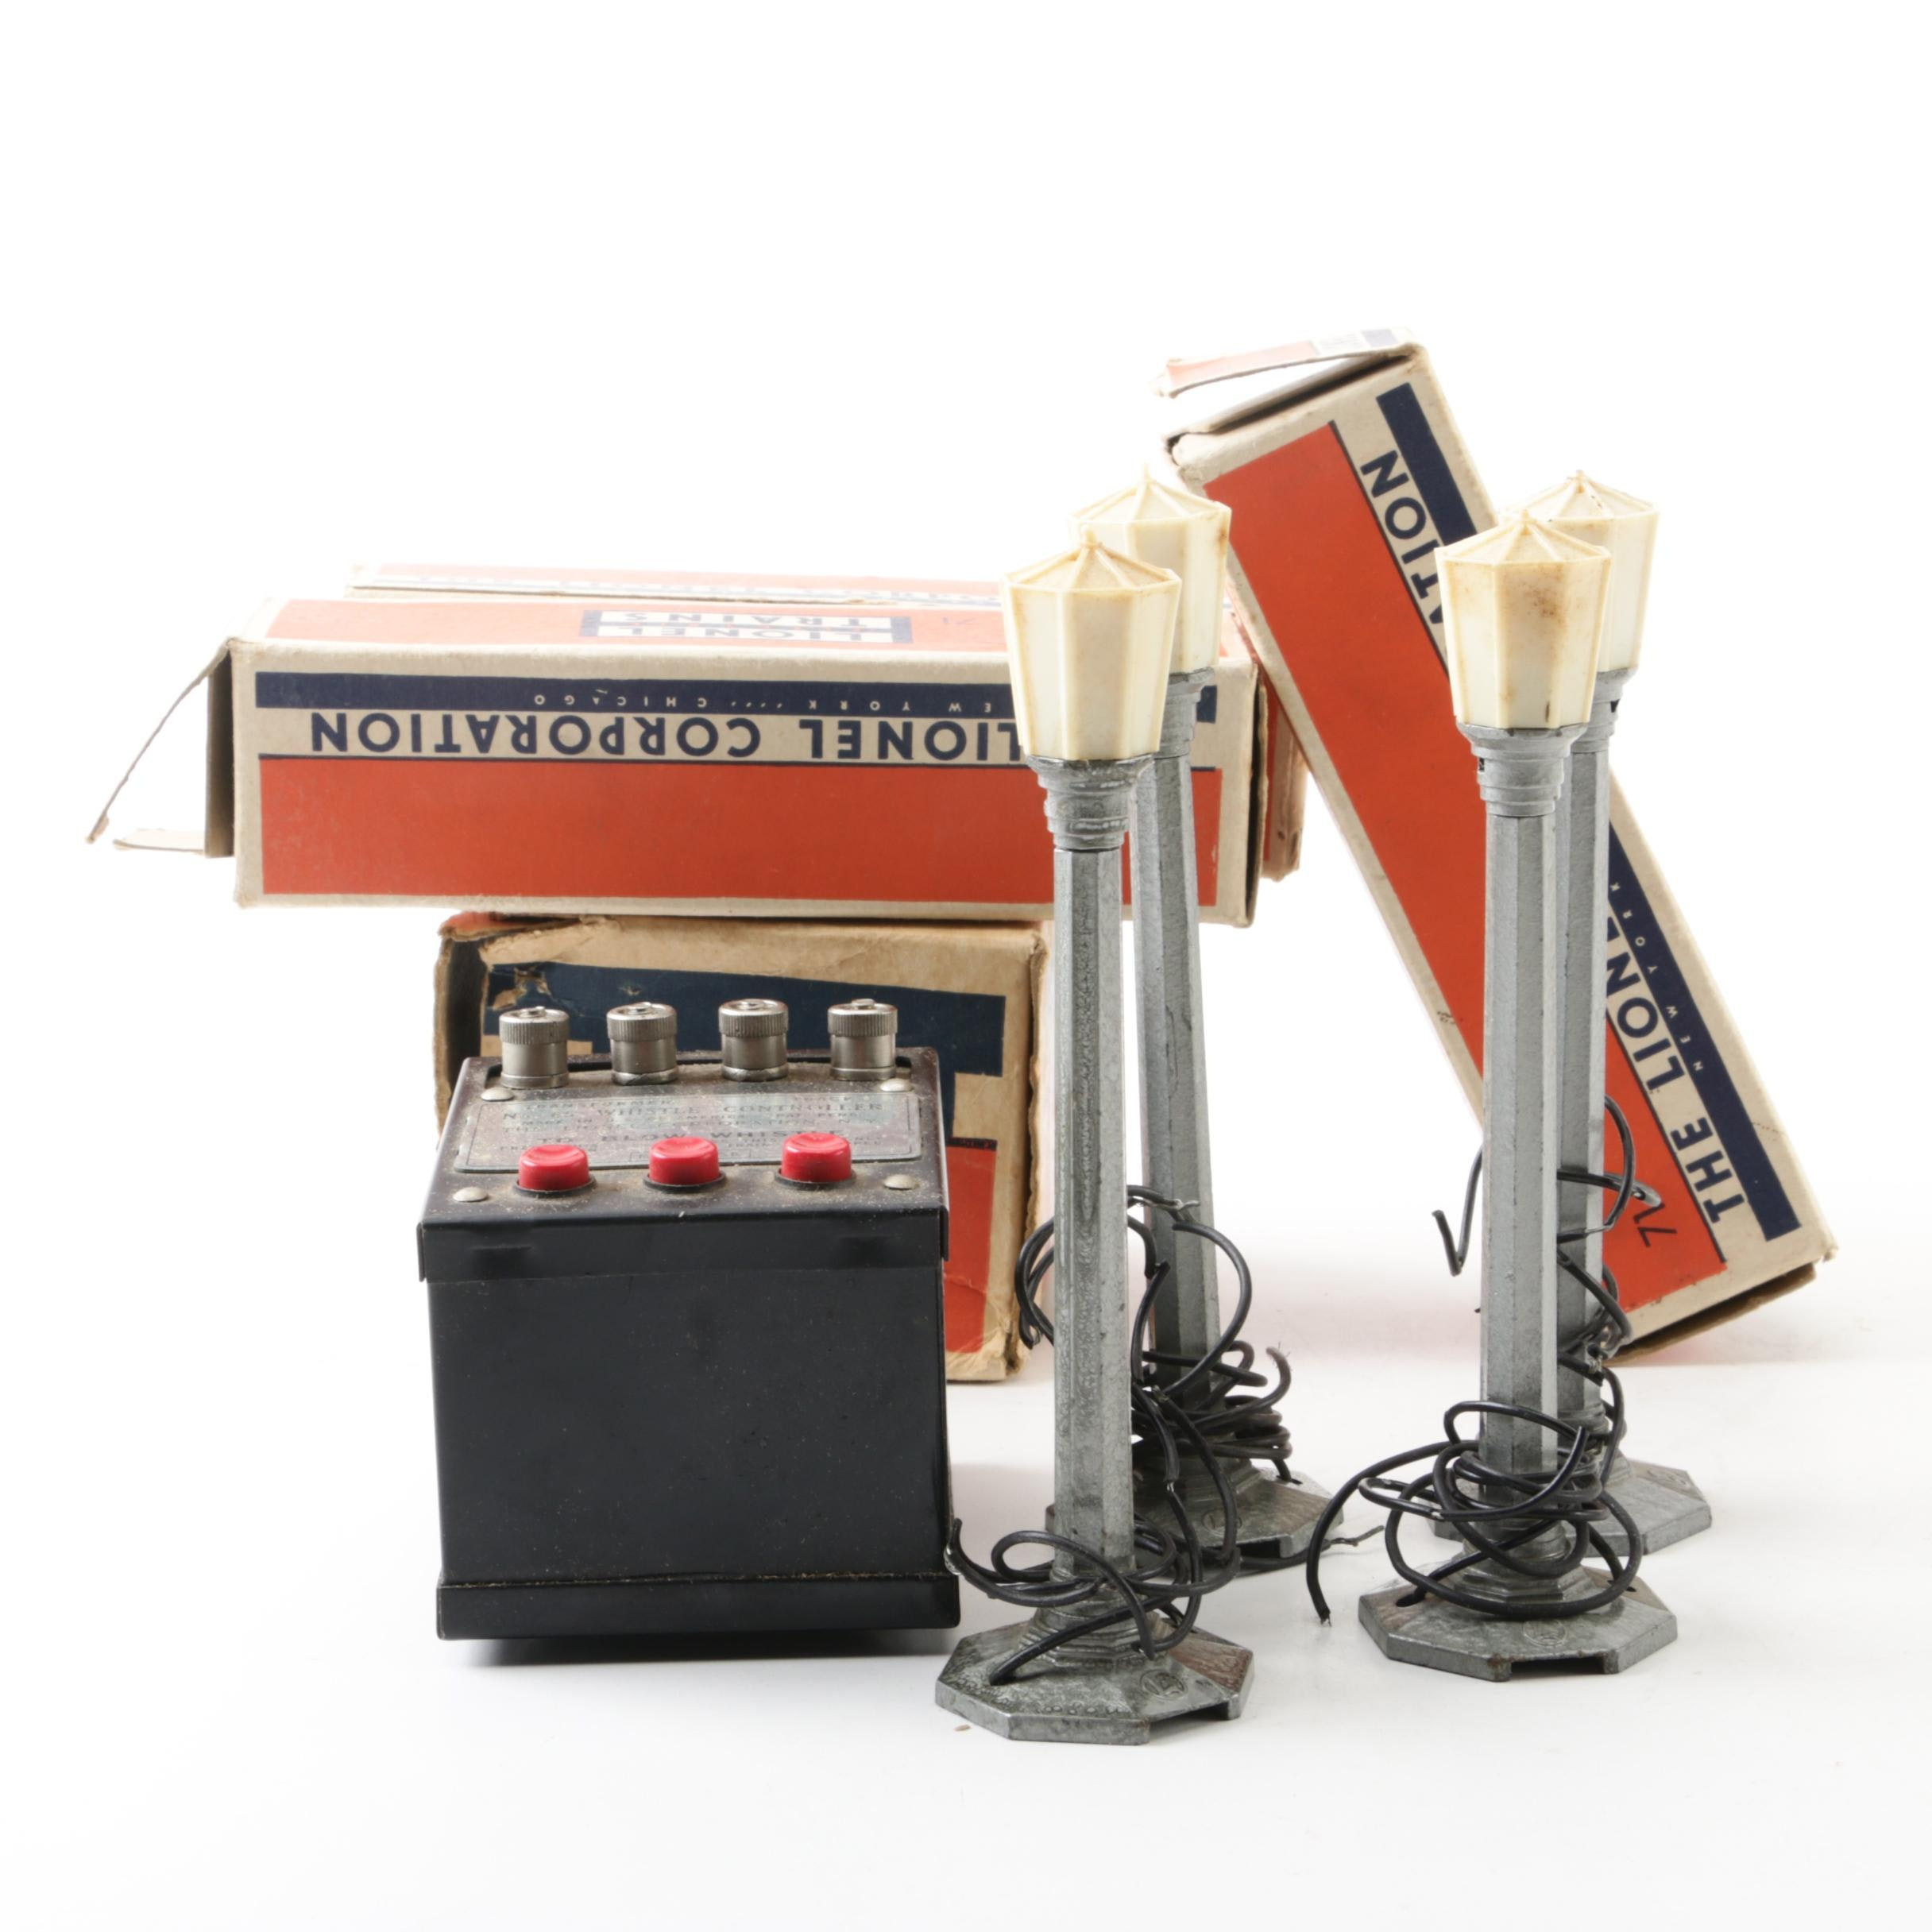 Lionel Lamp Posts and Whistle Controller